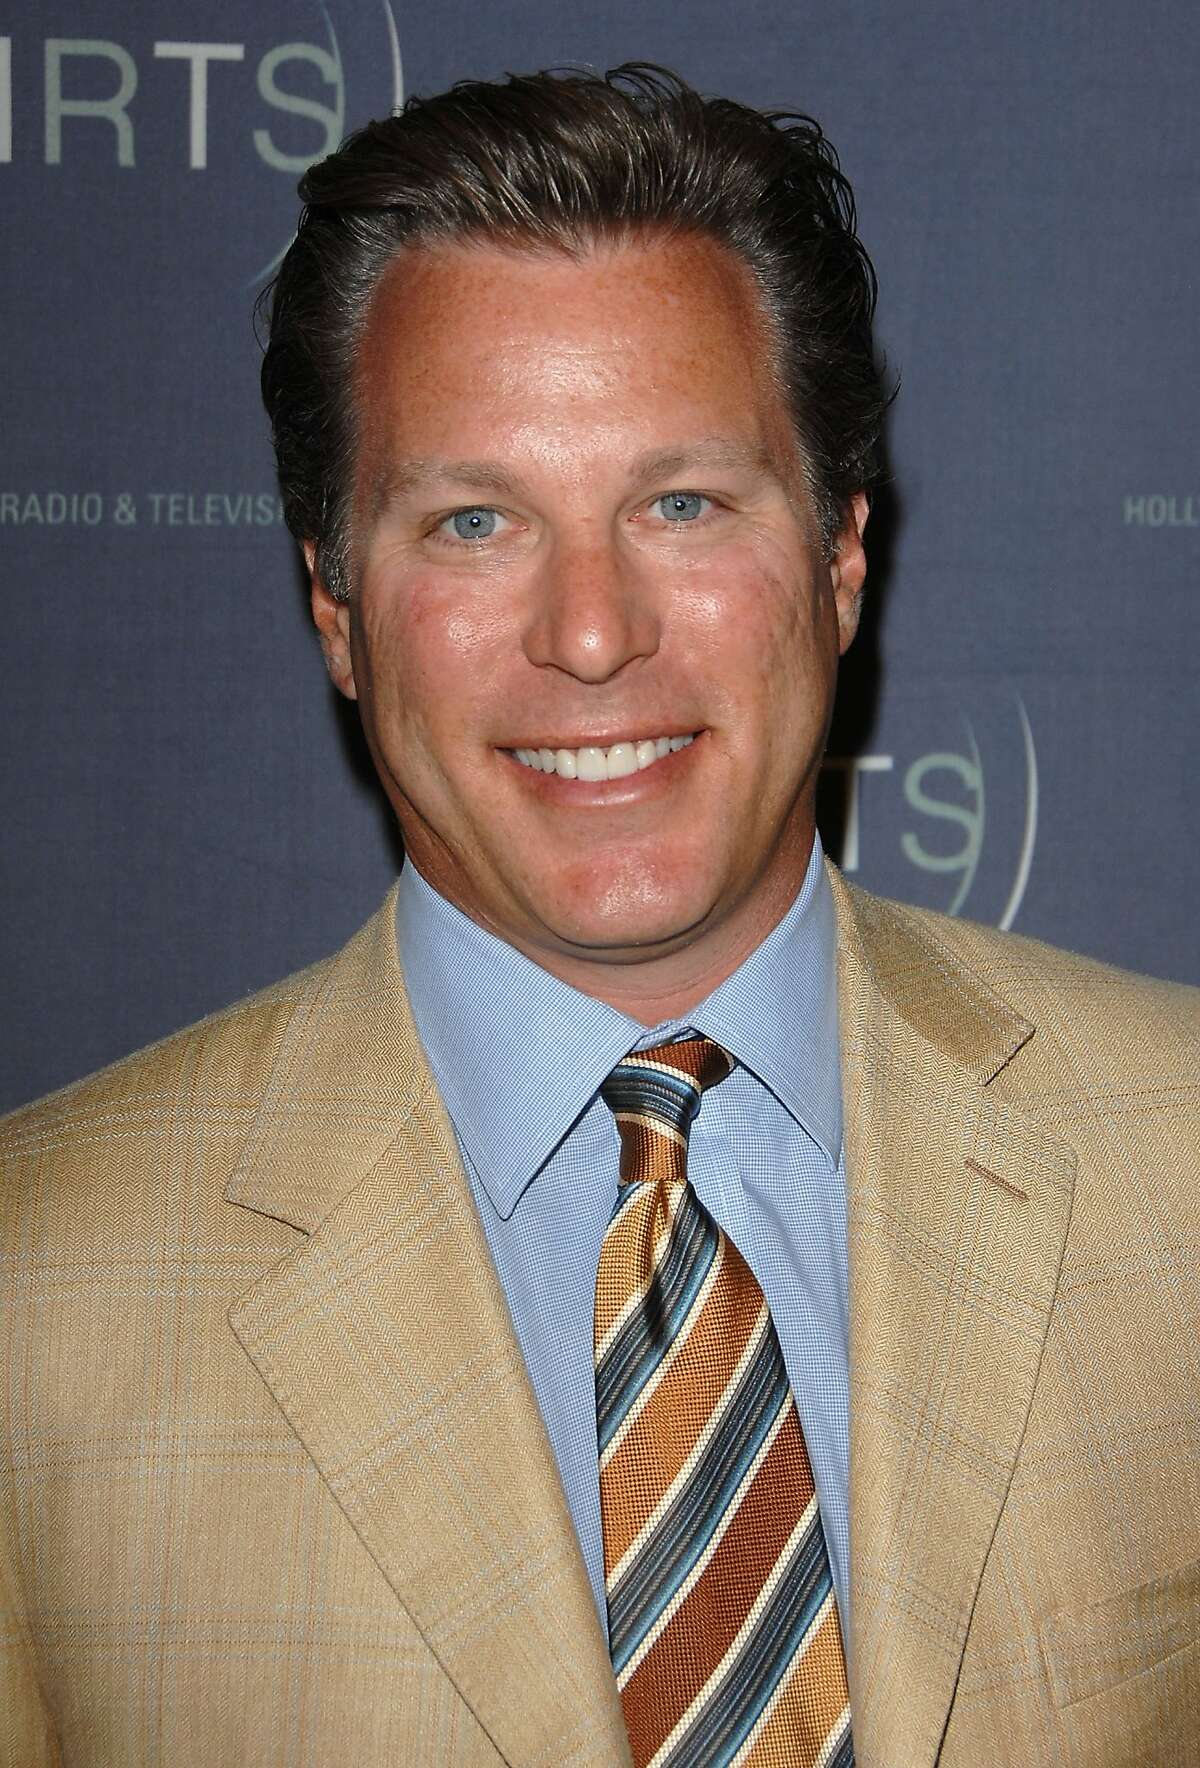 """FILE - JULY 30: It was reported that Yahoo exec Ross Levinsohn, who served as interim CEO, is leaving the company after former Google exec Marissa Mayer was made CEO July 30, 2012. BEVERLY HILLS, CA - JULY 17: Panelist Ross Levinsohn attends the Hollywood Radio & Television Society """"State of the Industry"""" Newsmaker Luncheon at the Regent Beverly Wilshire on July 17, 2007 in Beverly Hills, California. (Photo by Stephen Shugerman/Getty Images for HRTS)"""